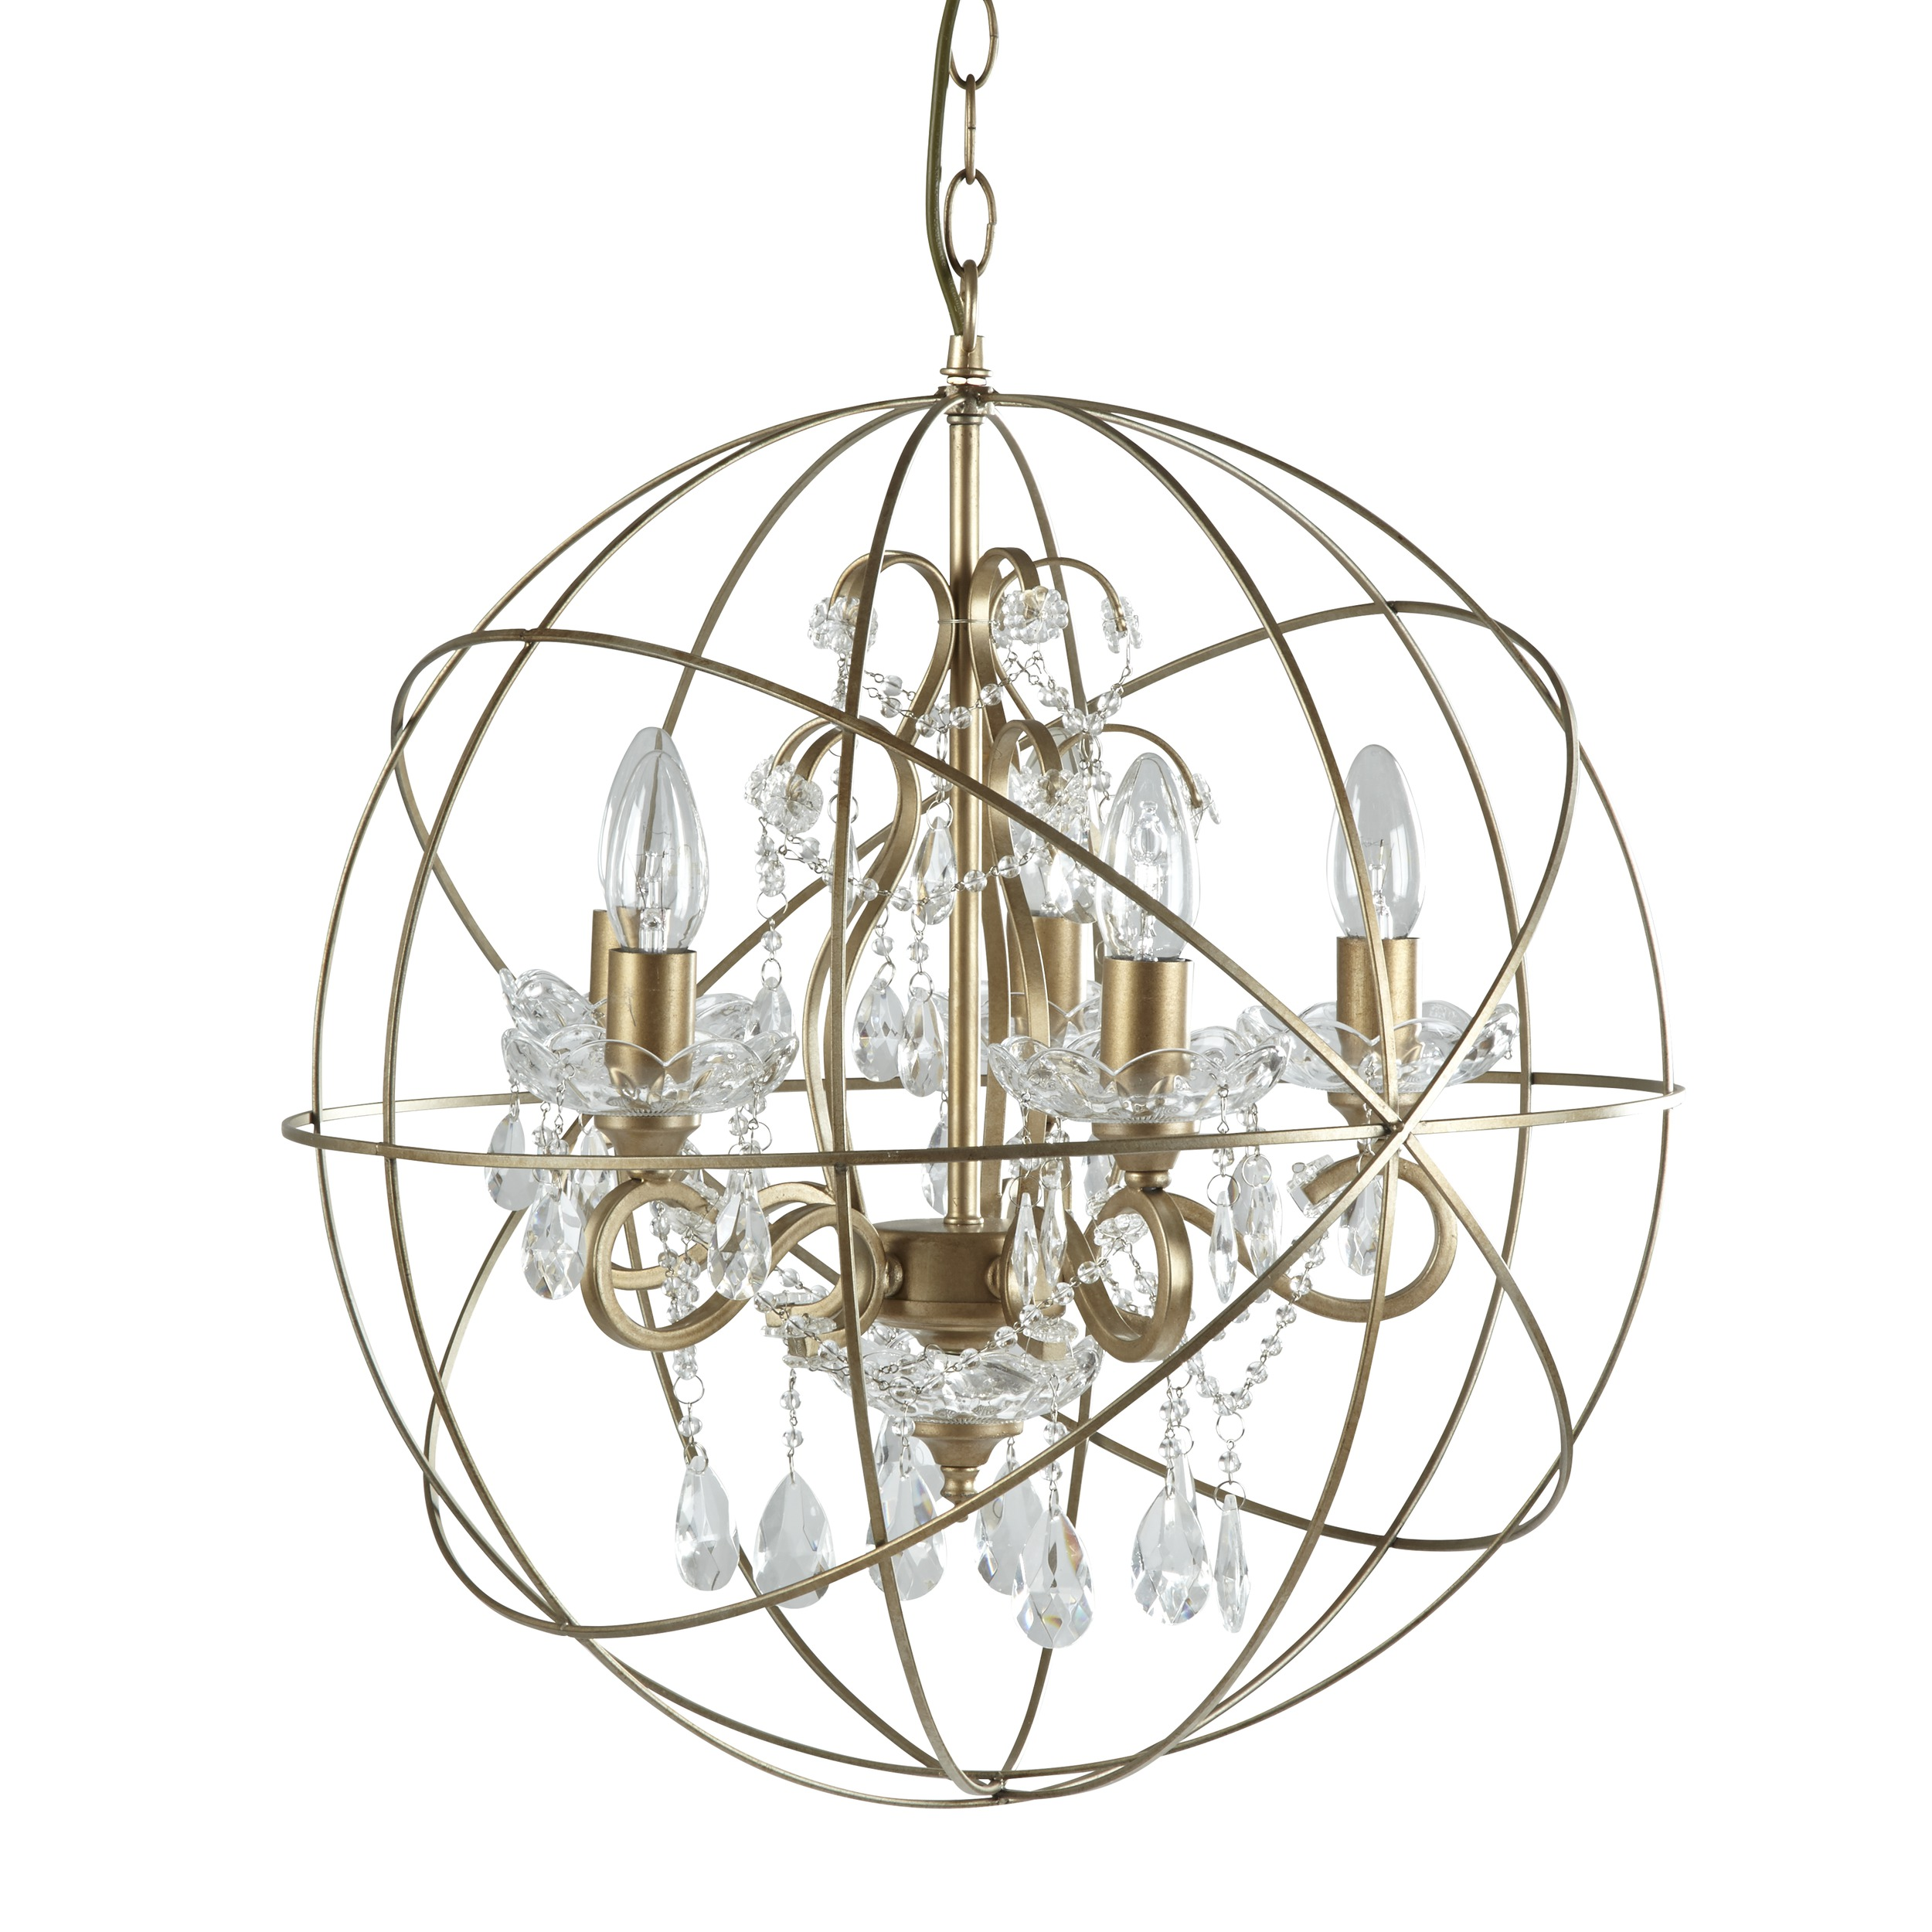 Awesome sphere chandelier metal orb chandelier with interesting Cheap Price for your Home Lighting